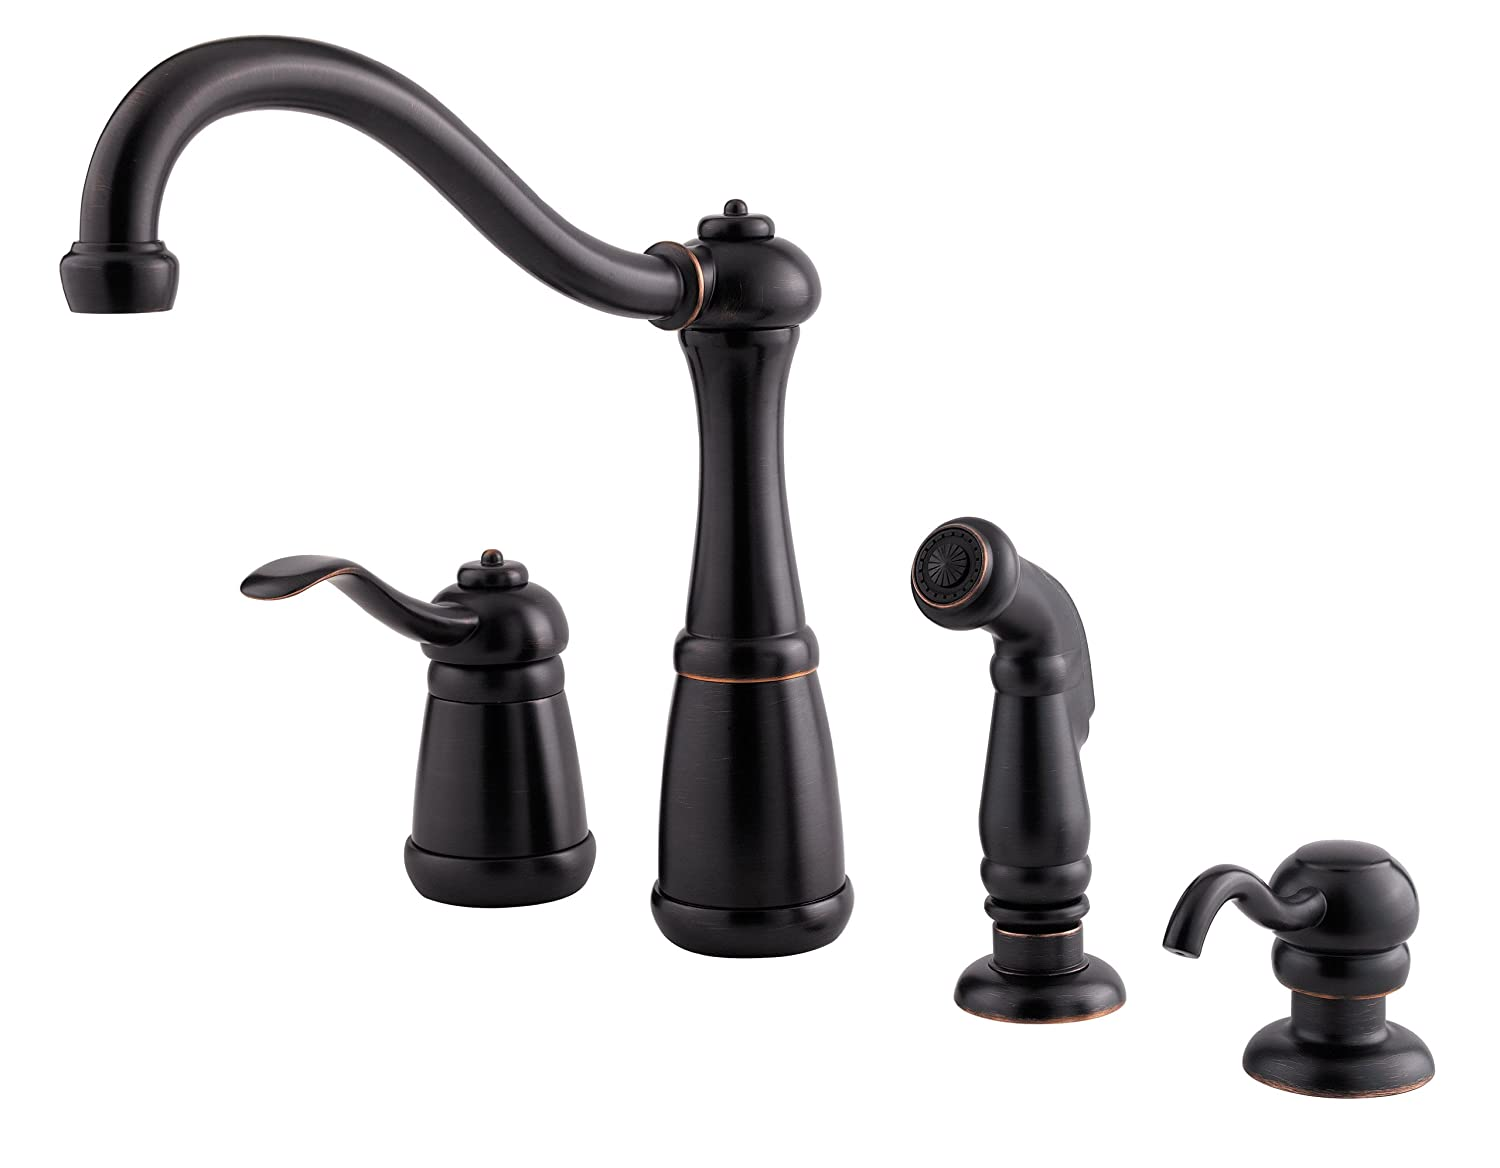 Pfister LG264NYY Marielle 1-Handle Kitchen Faucet with Side Spray ...